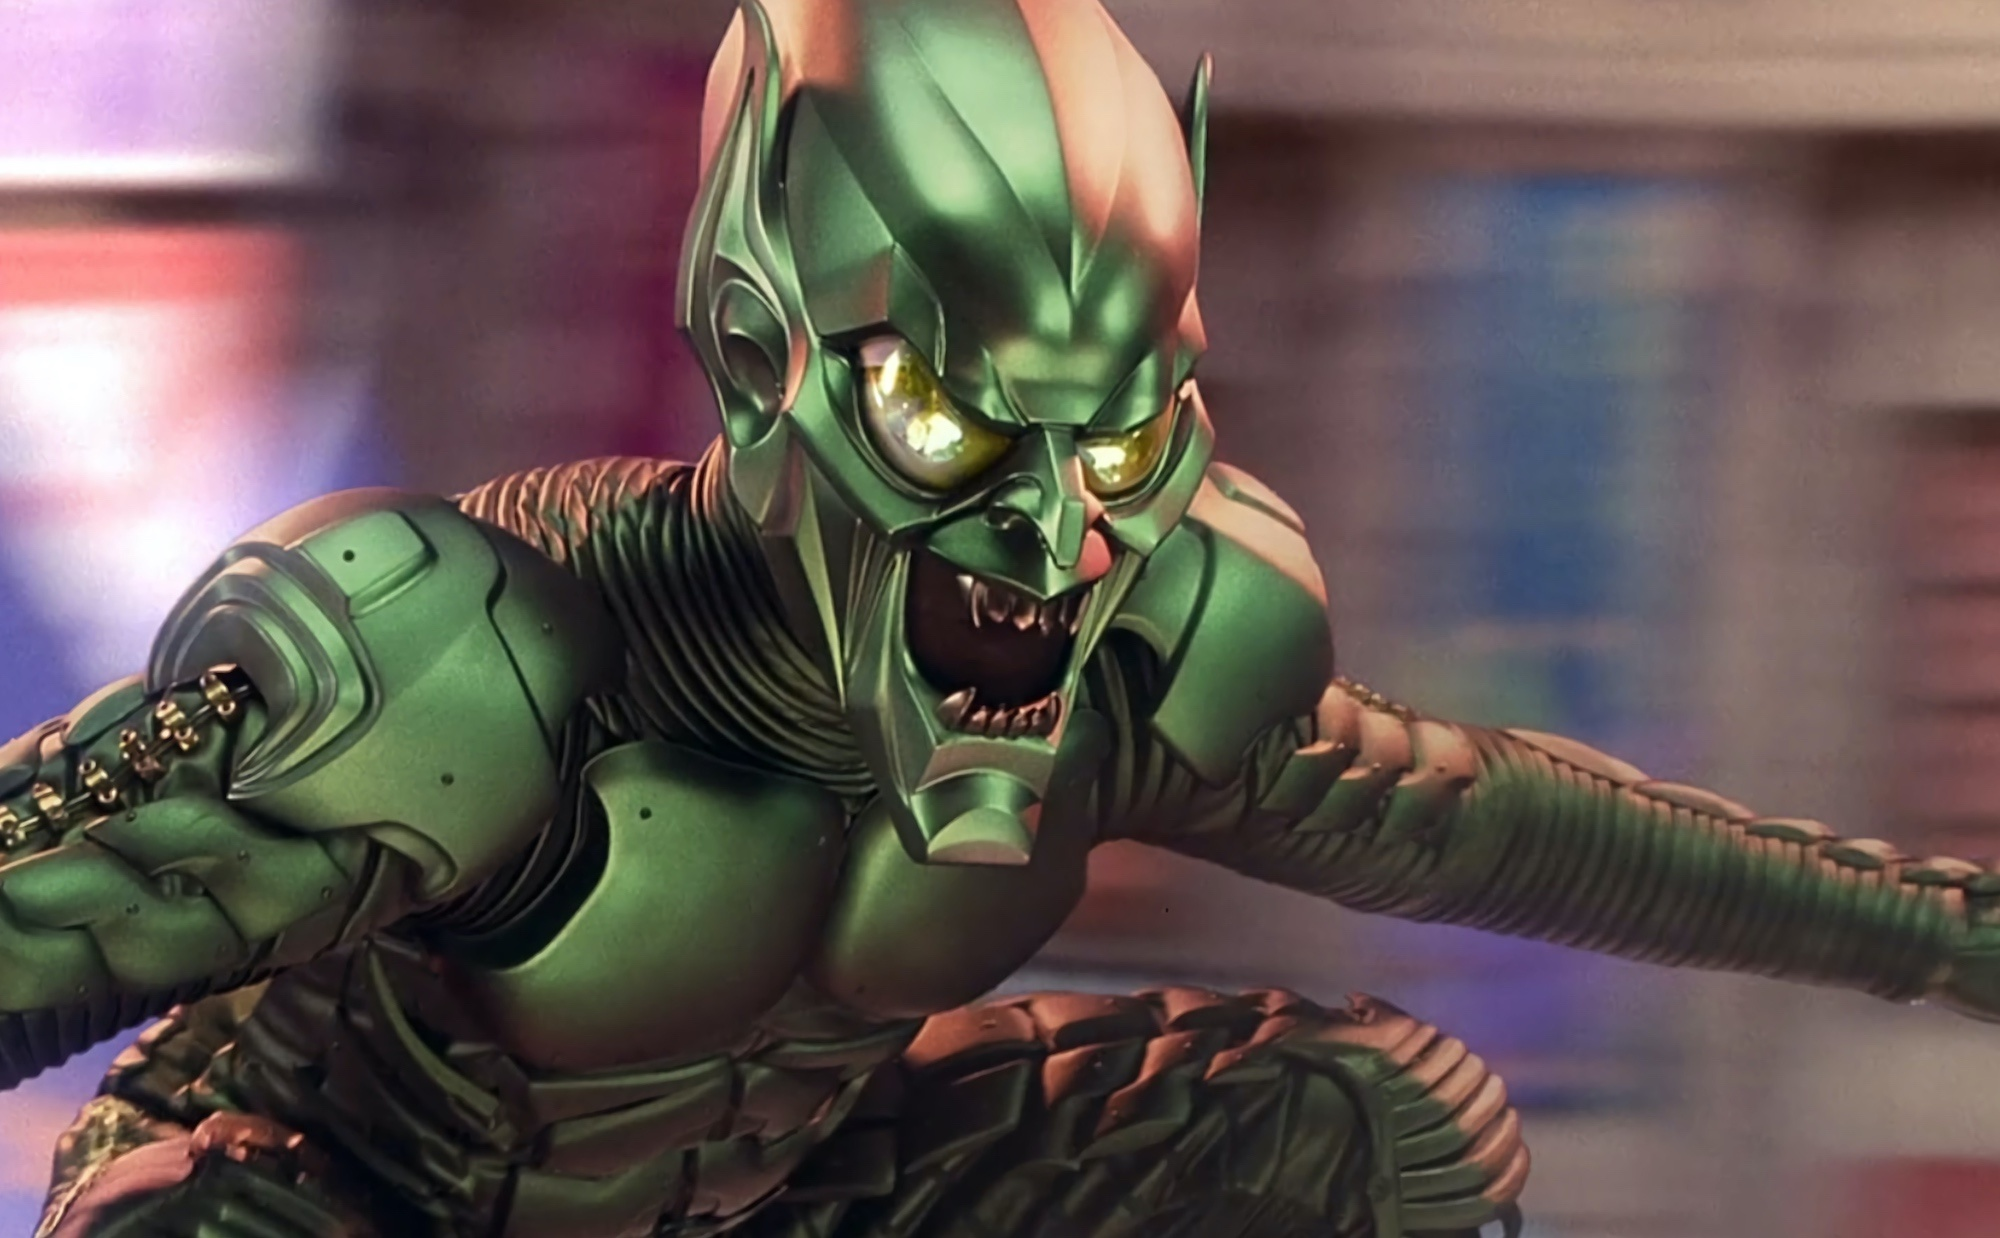 Willem Dafoe finally pronounces on the alleged appearance of the Green Goblin in 'Spider-Man: No Way Home'